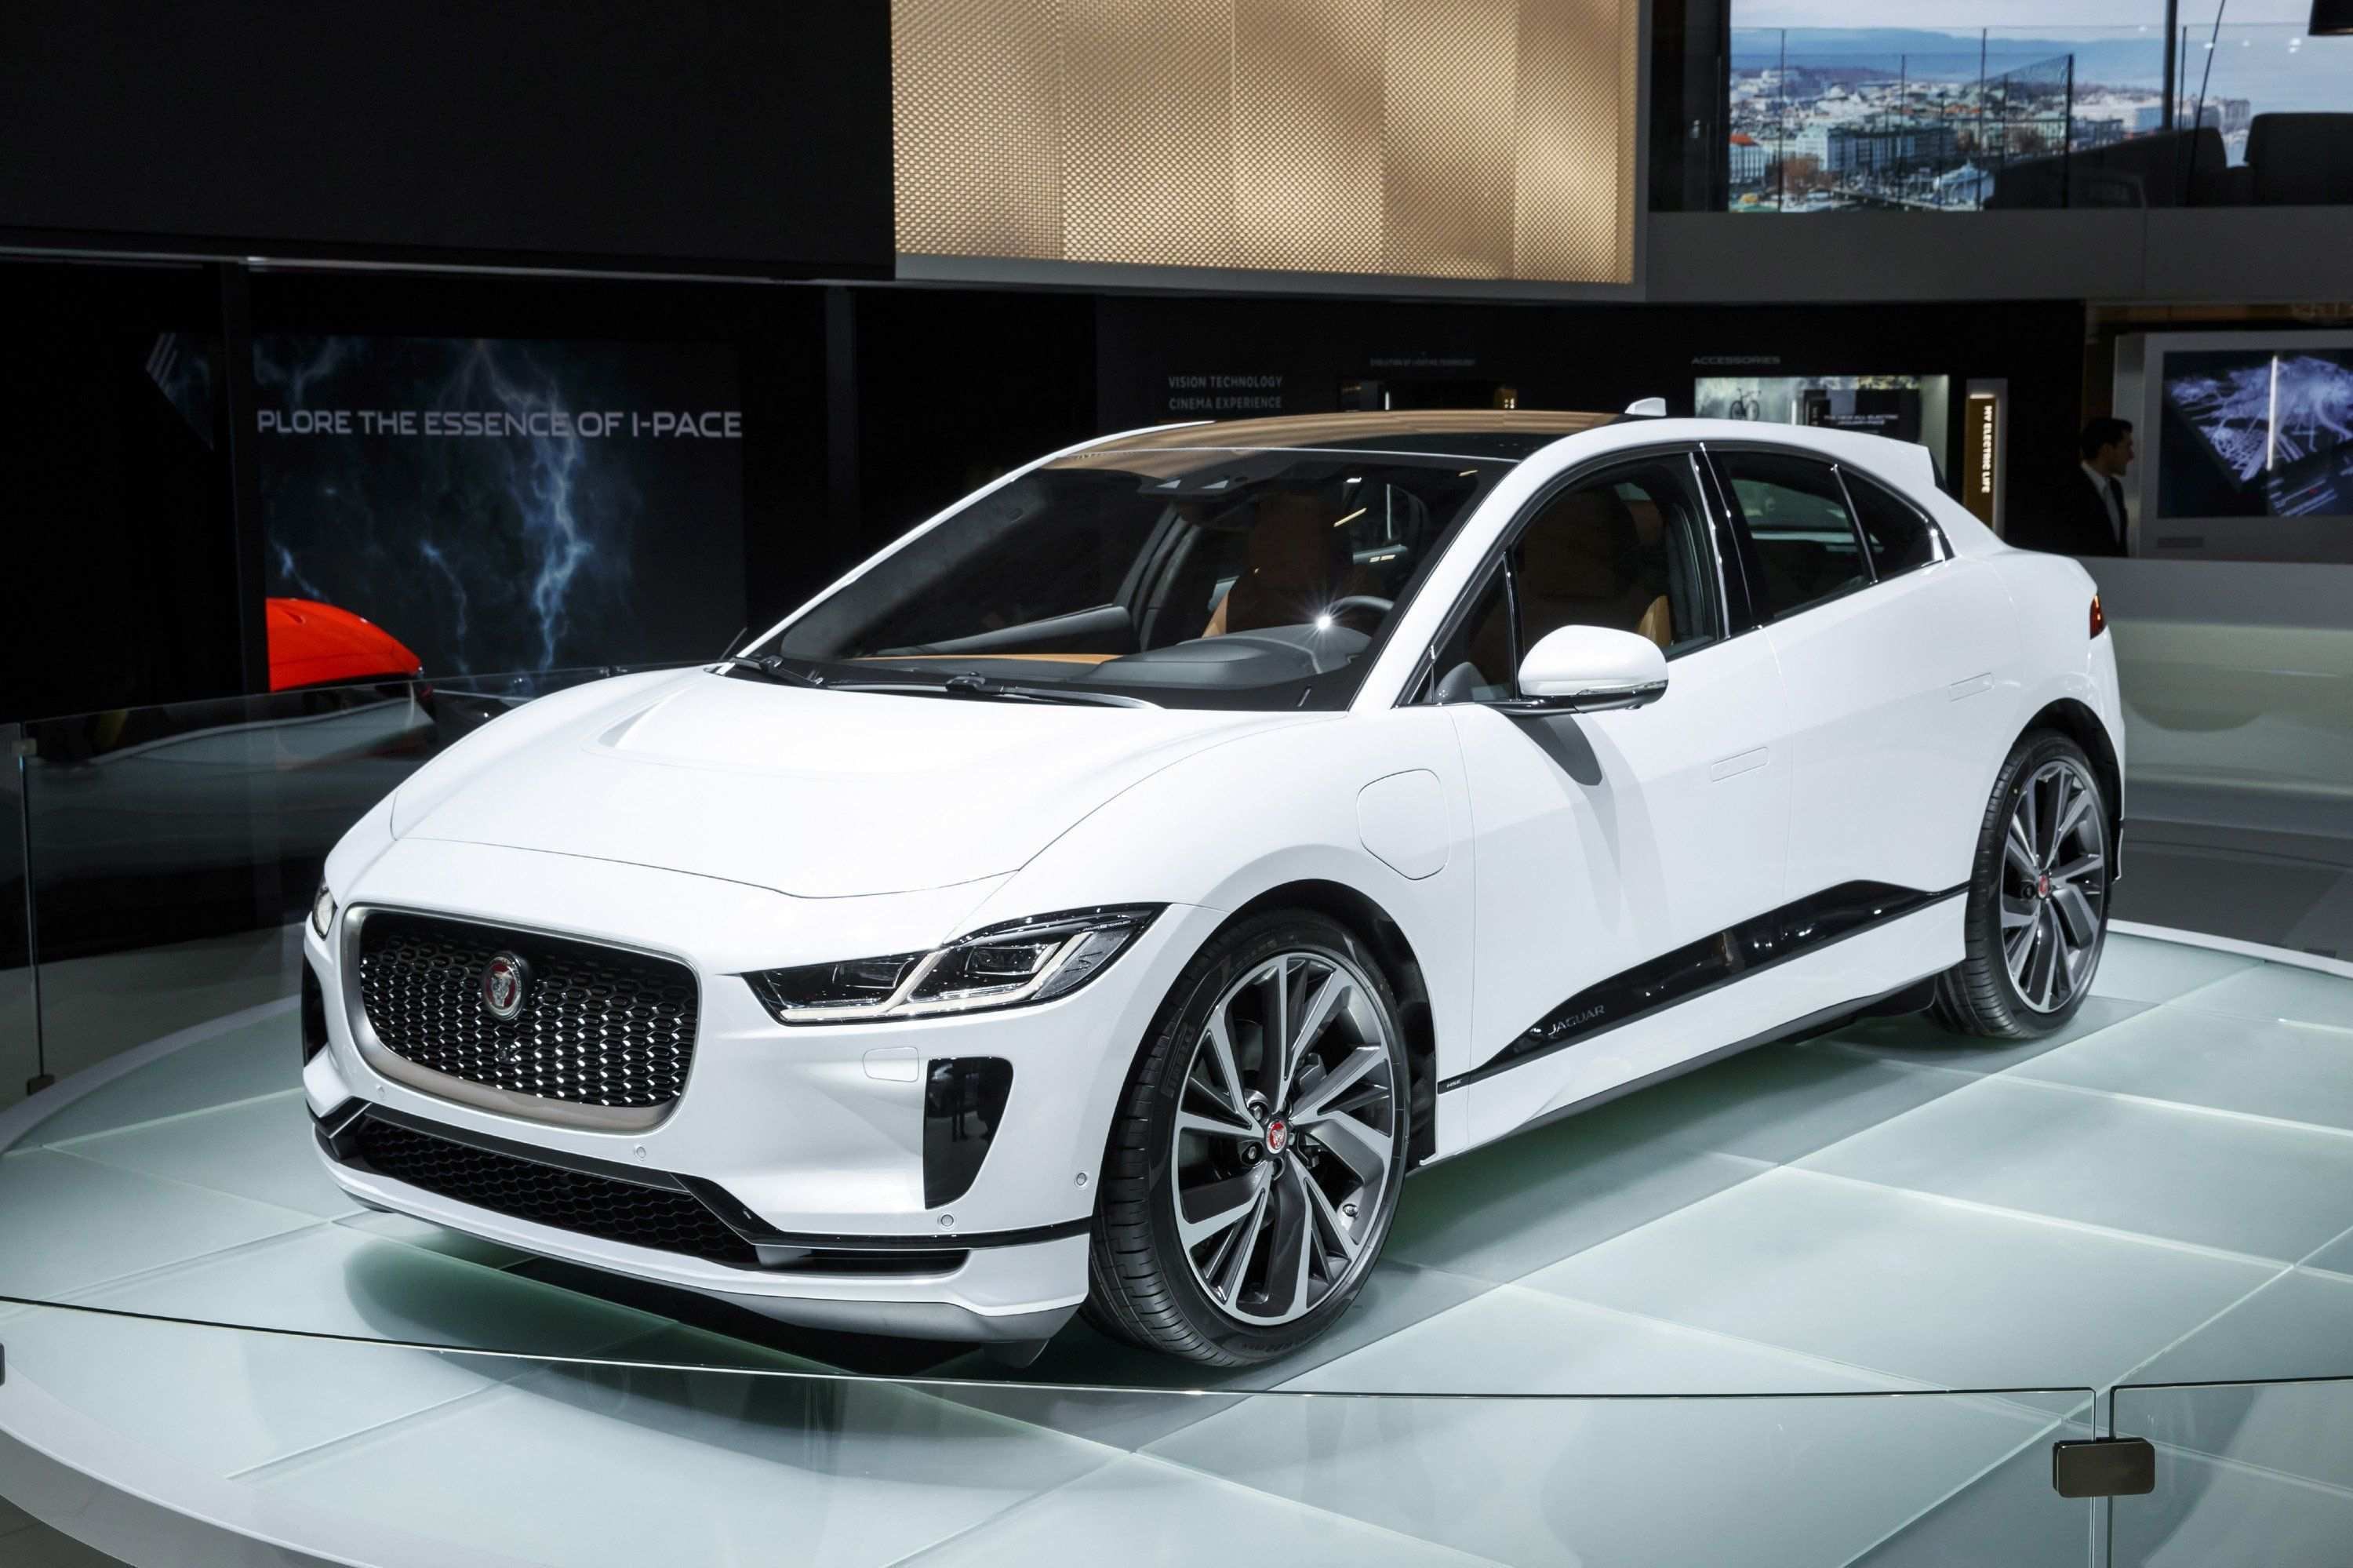 36 Gallery of New 2019 Jaguar I Pace Wiki Review Specs And Release Date Engine by New 2019 Jaguar I Pace Wiki Review Specs And Release Date